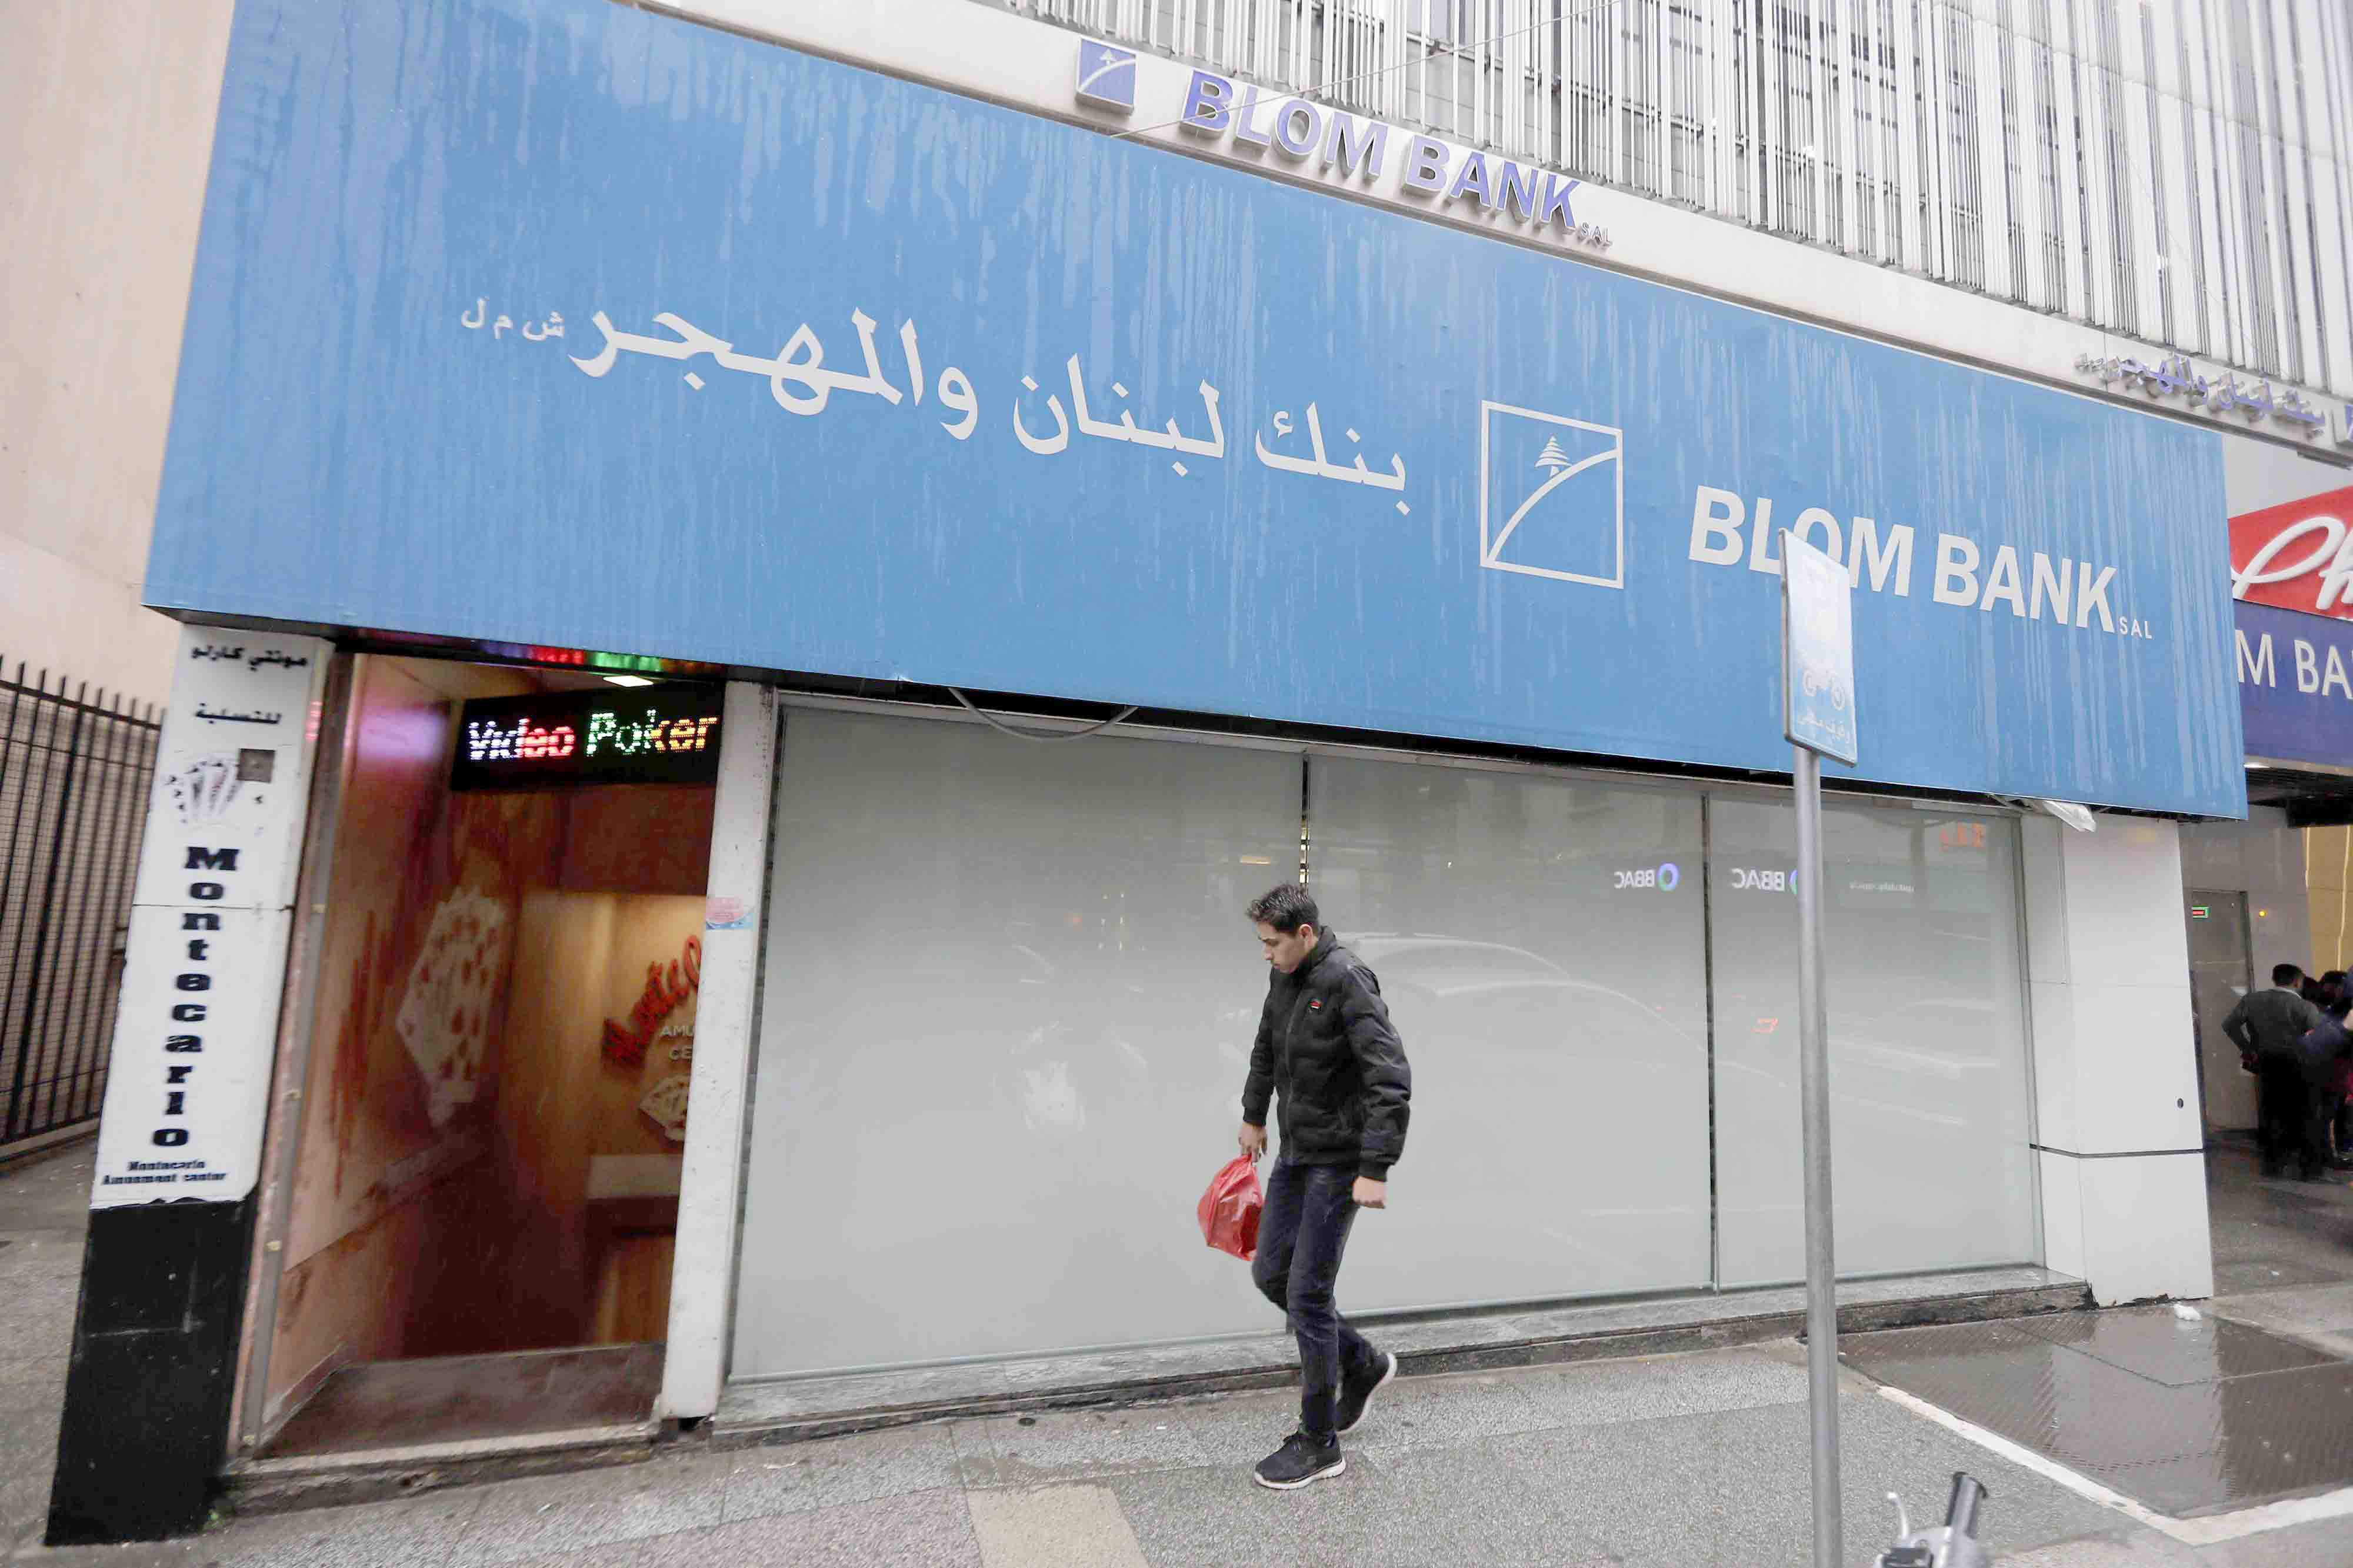 A man walks in front of a bank in Beirut, March 6. (AFP)